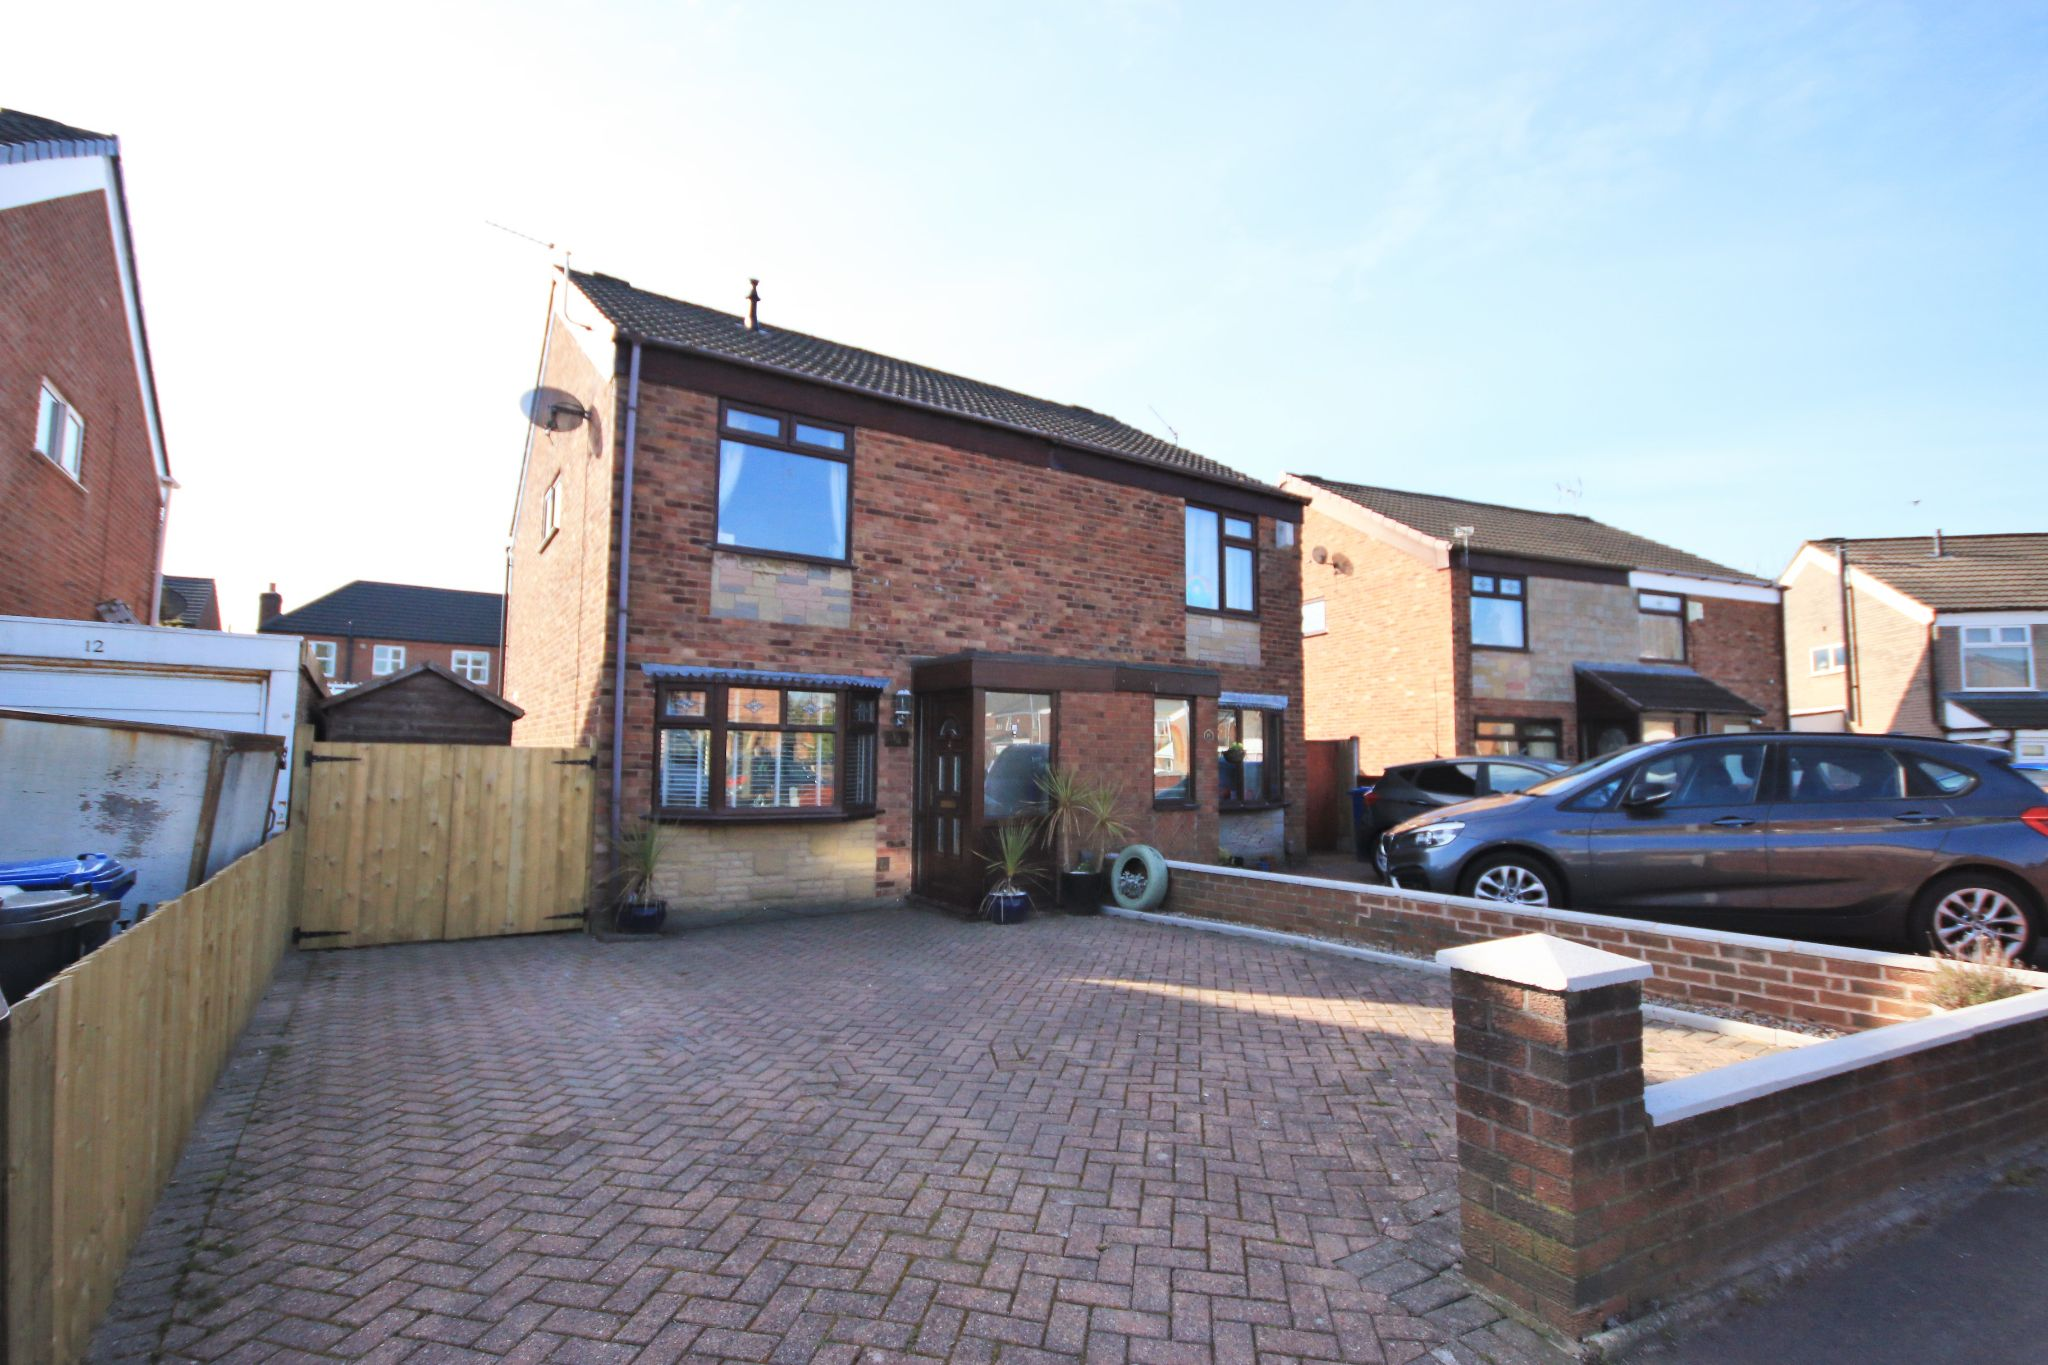 3 bedroom semi-detached house Sold in Wigan - Photograph 1.